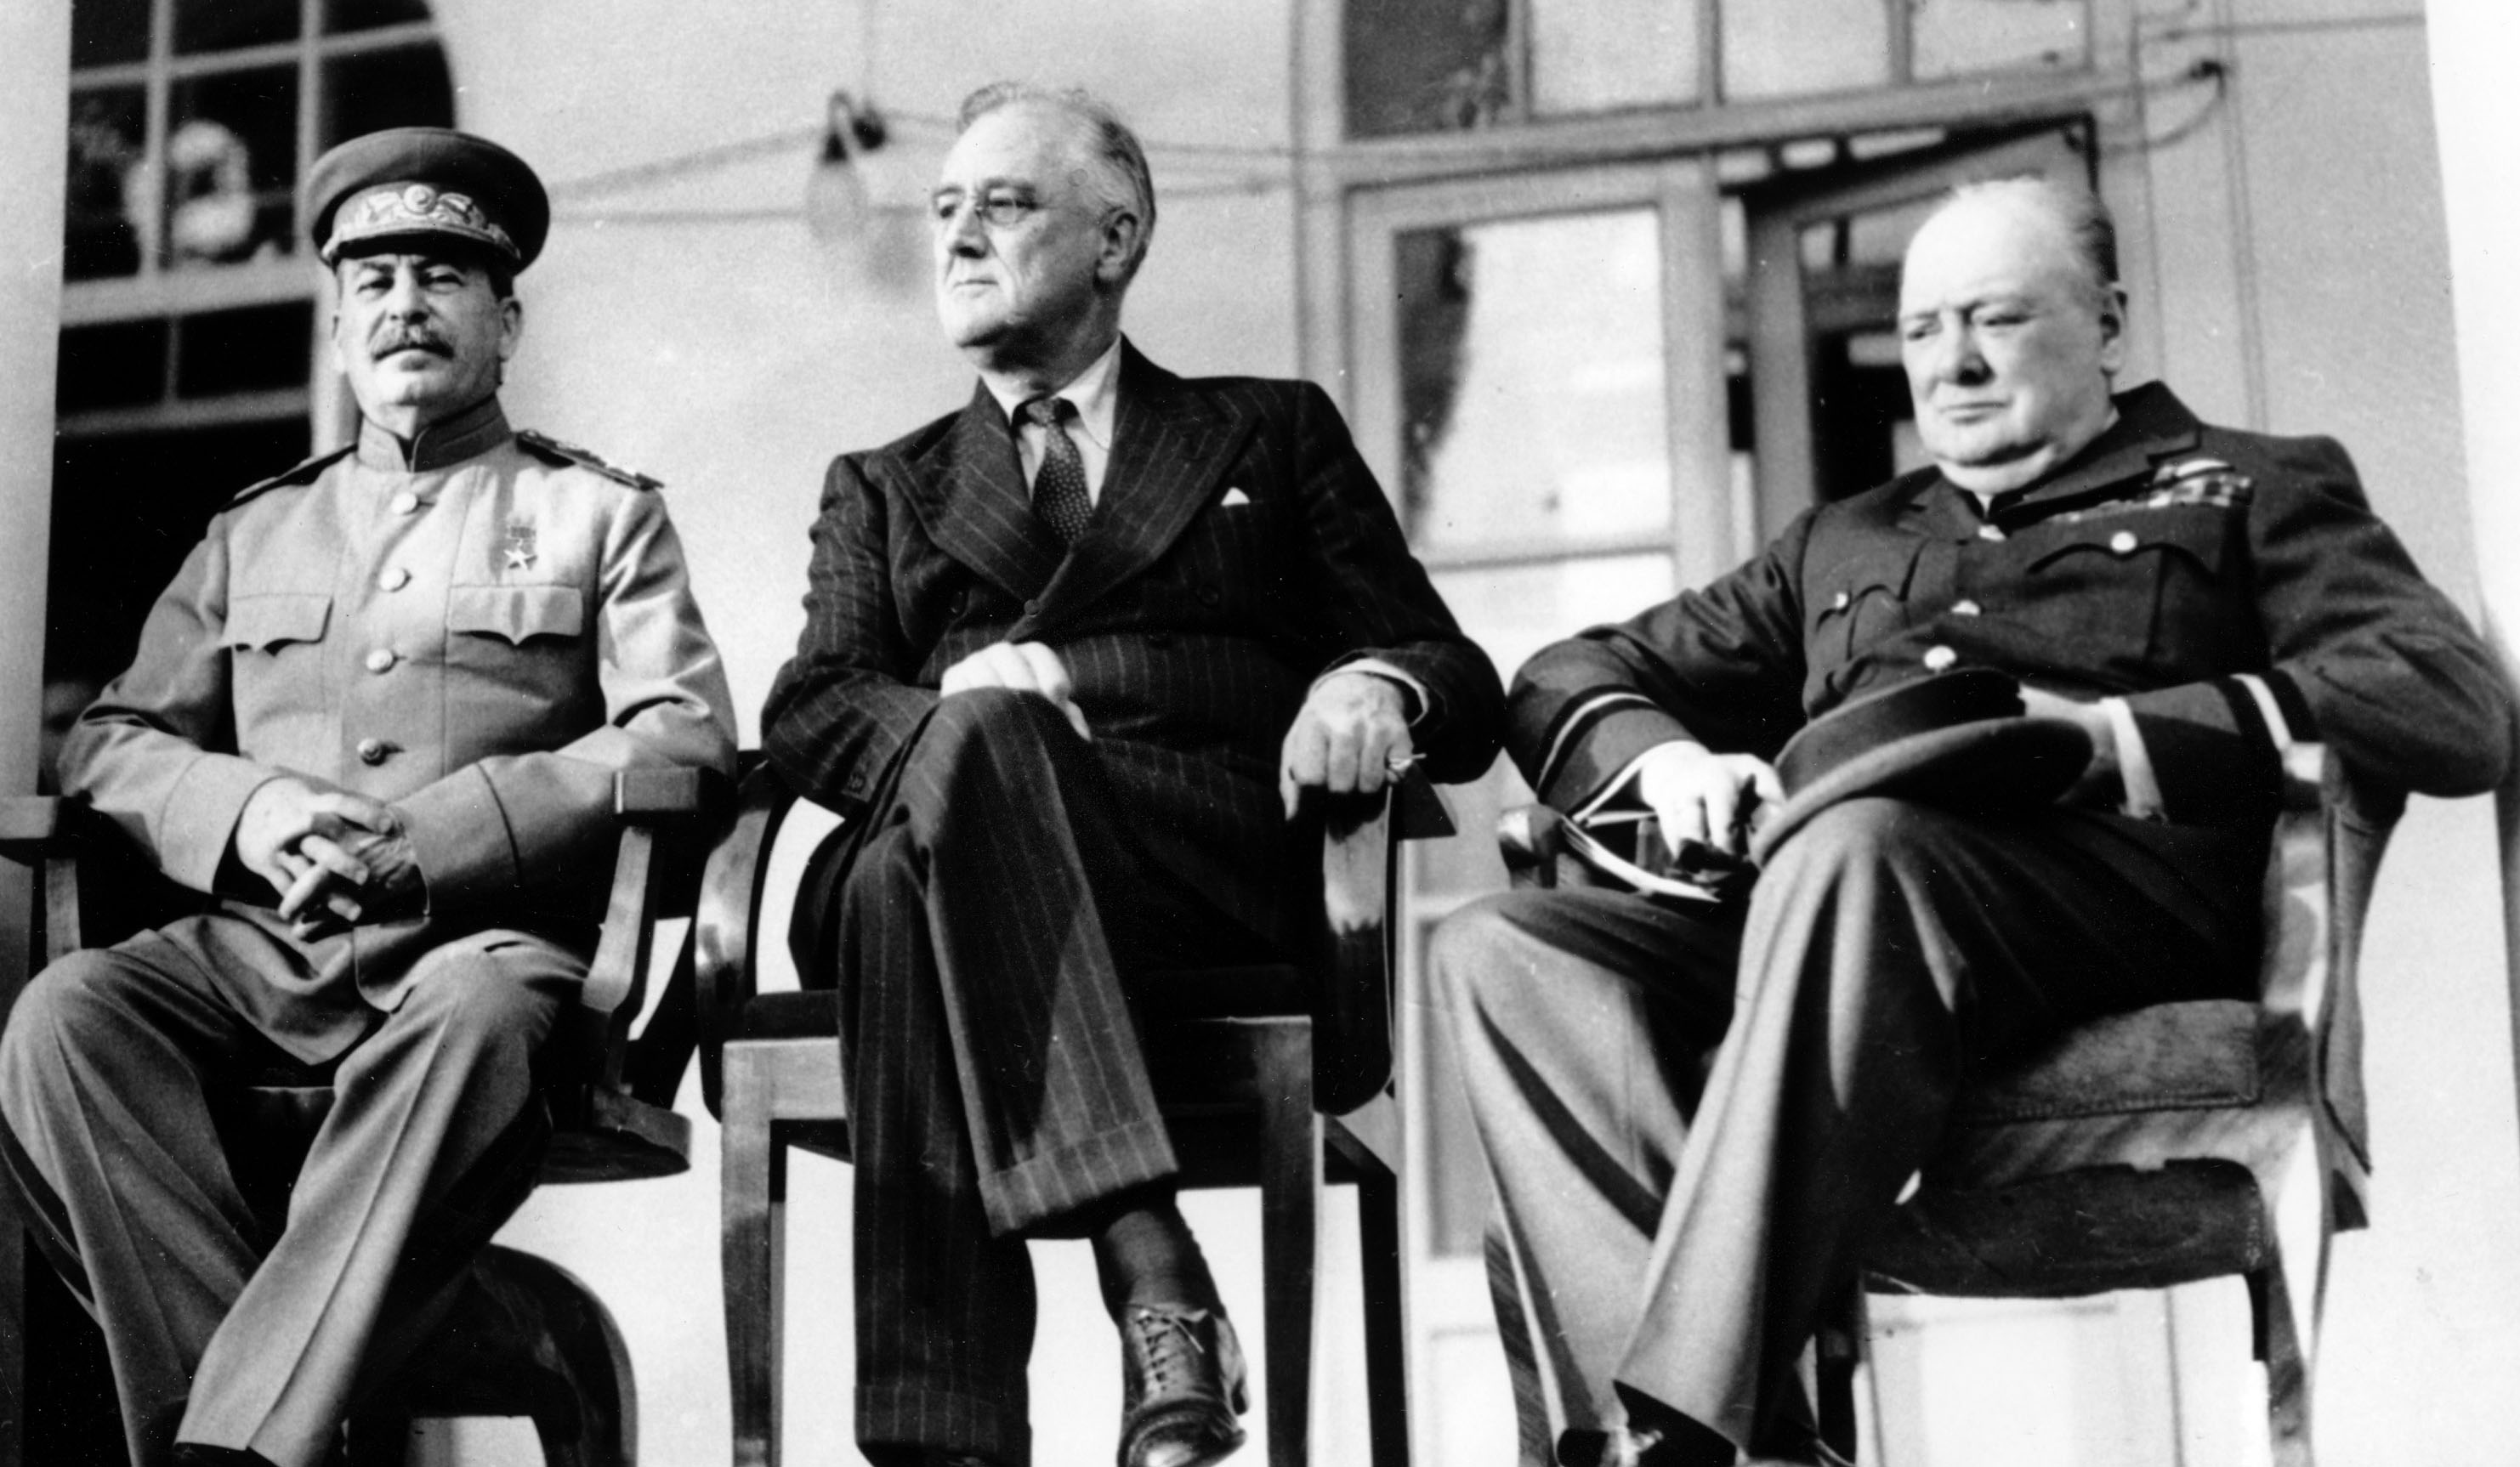 personalities/stalin-roosevelt-churchill-tehran-conference-11-28-1943